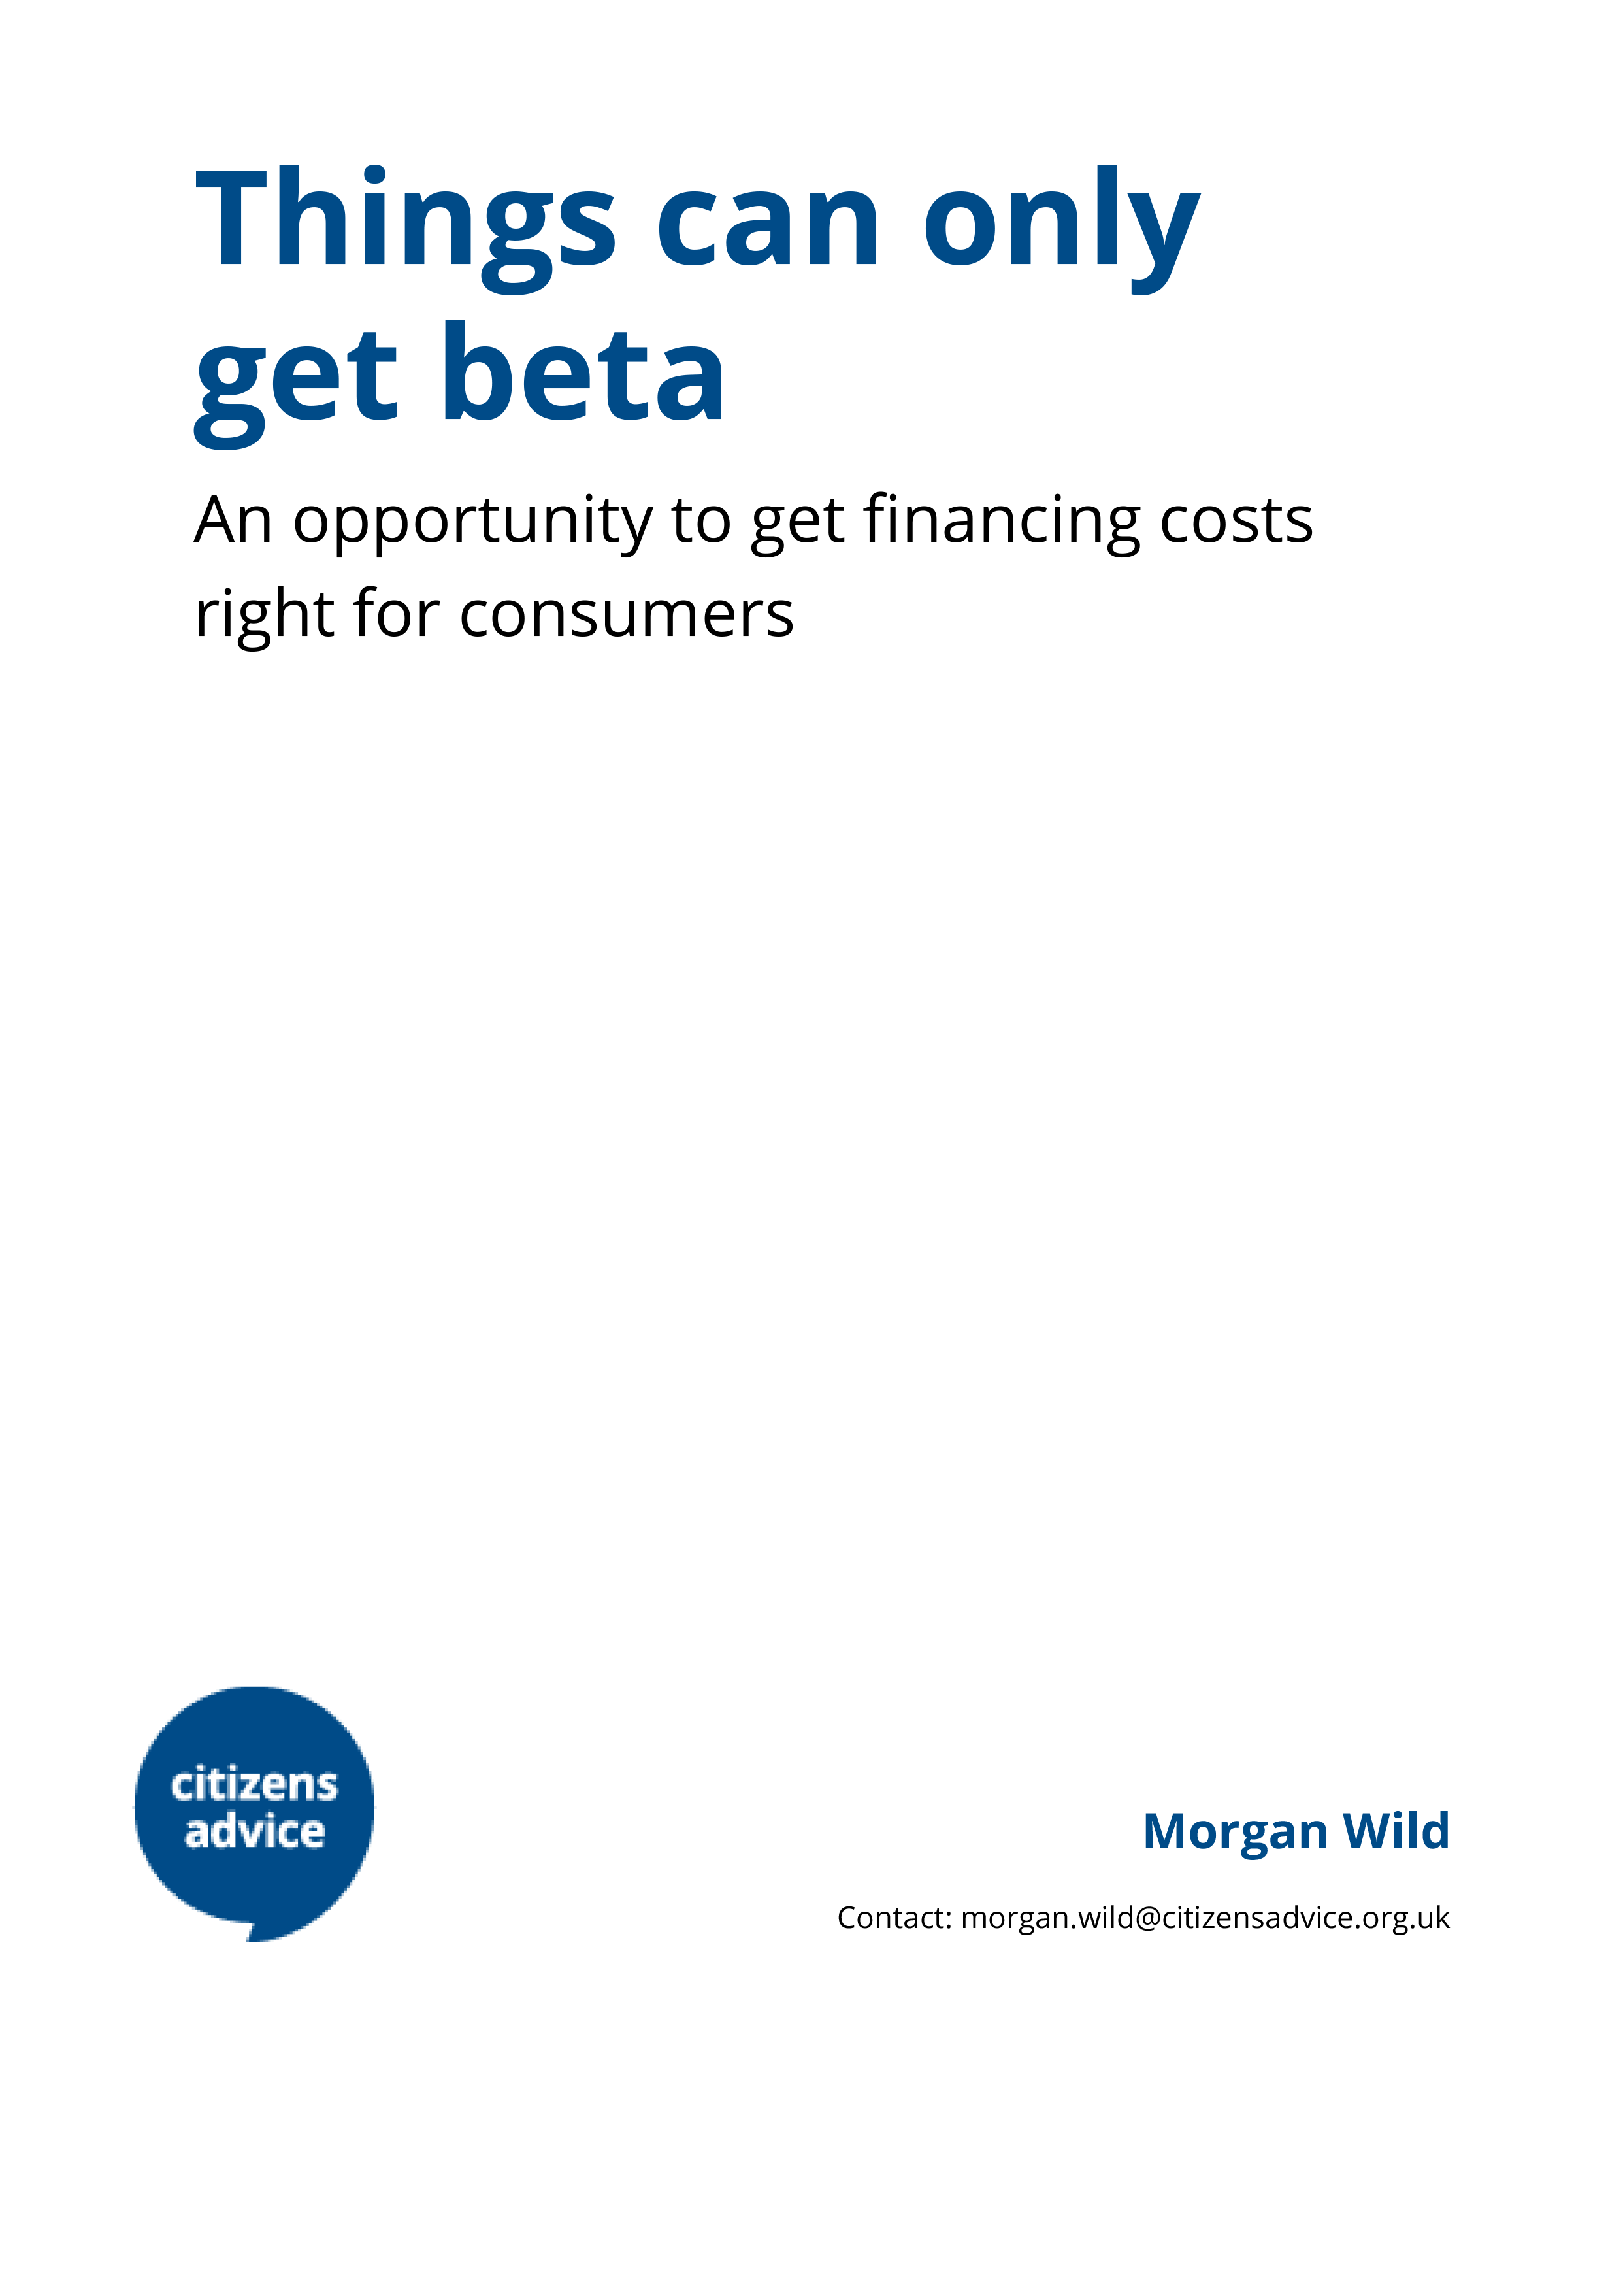 Things can only get beta: An opportunity to get financing costs right for consumers